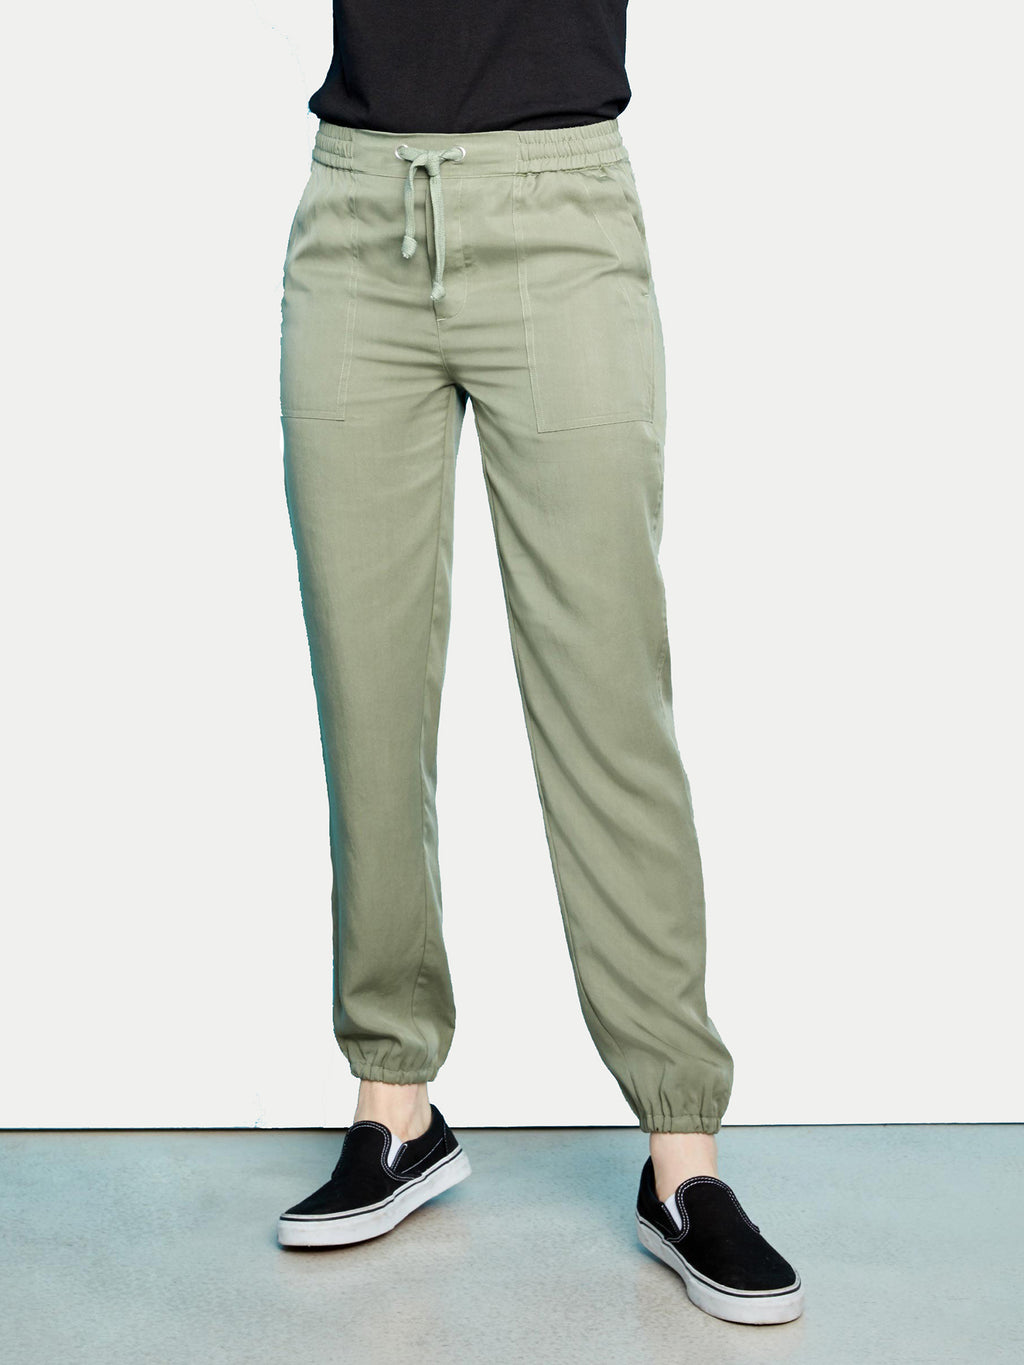 Buy Ryan Street Pants from REIKO at paya boutique